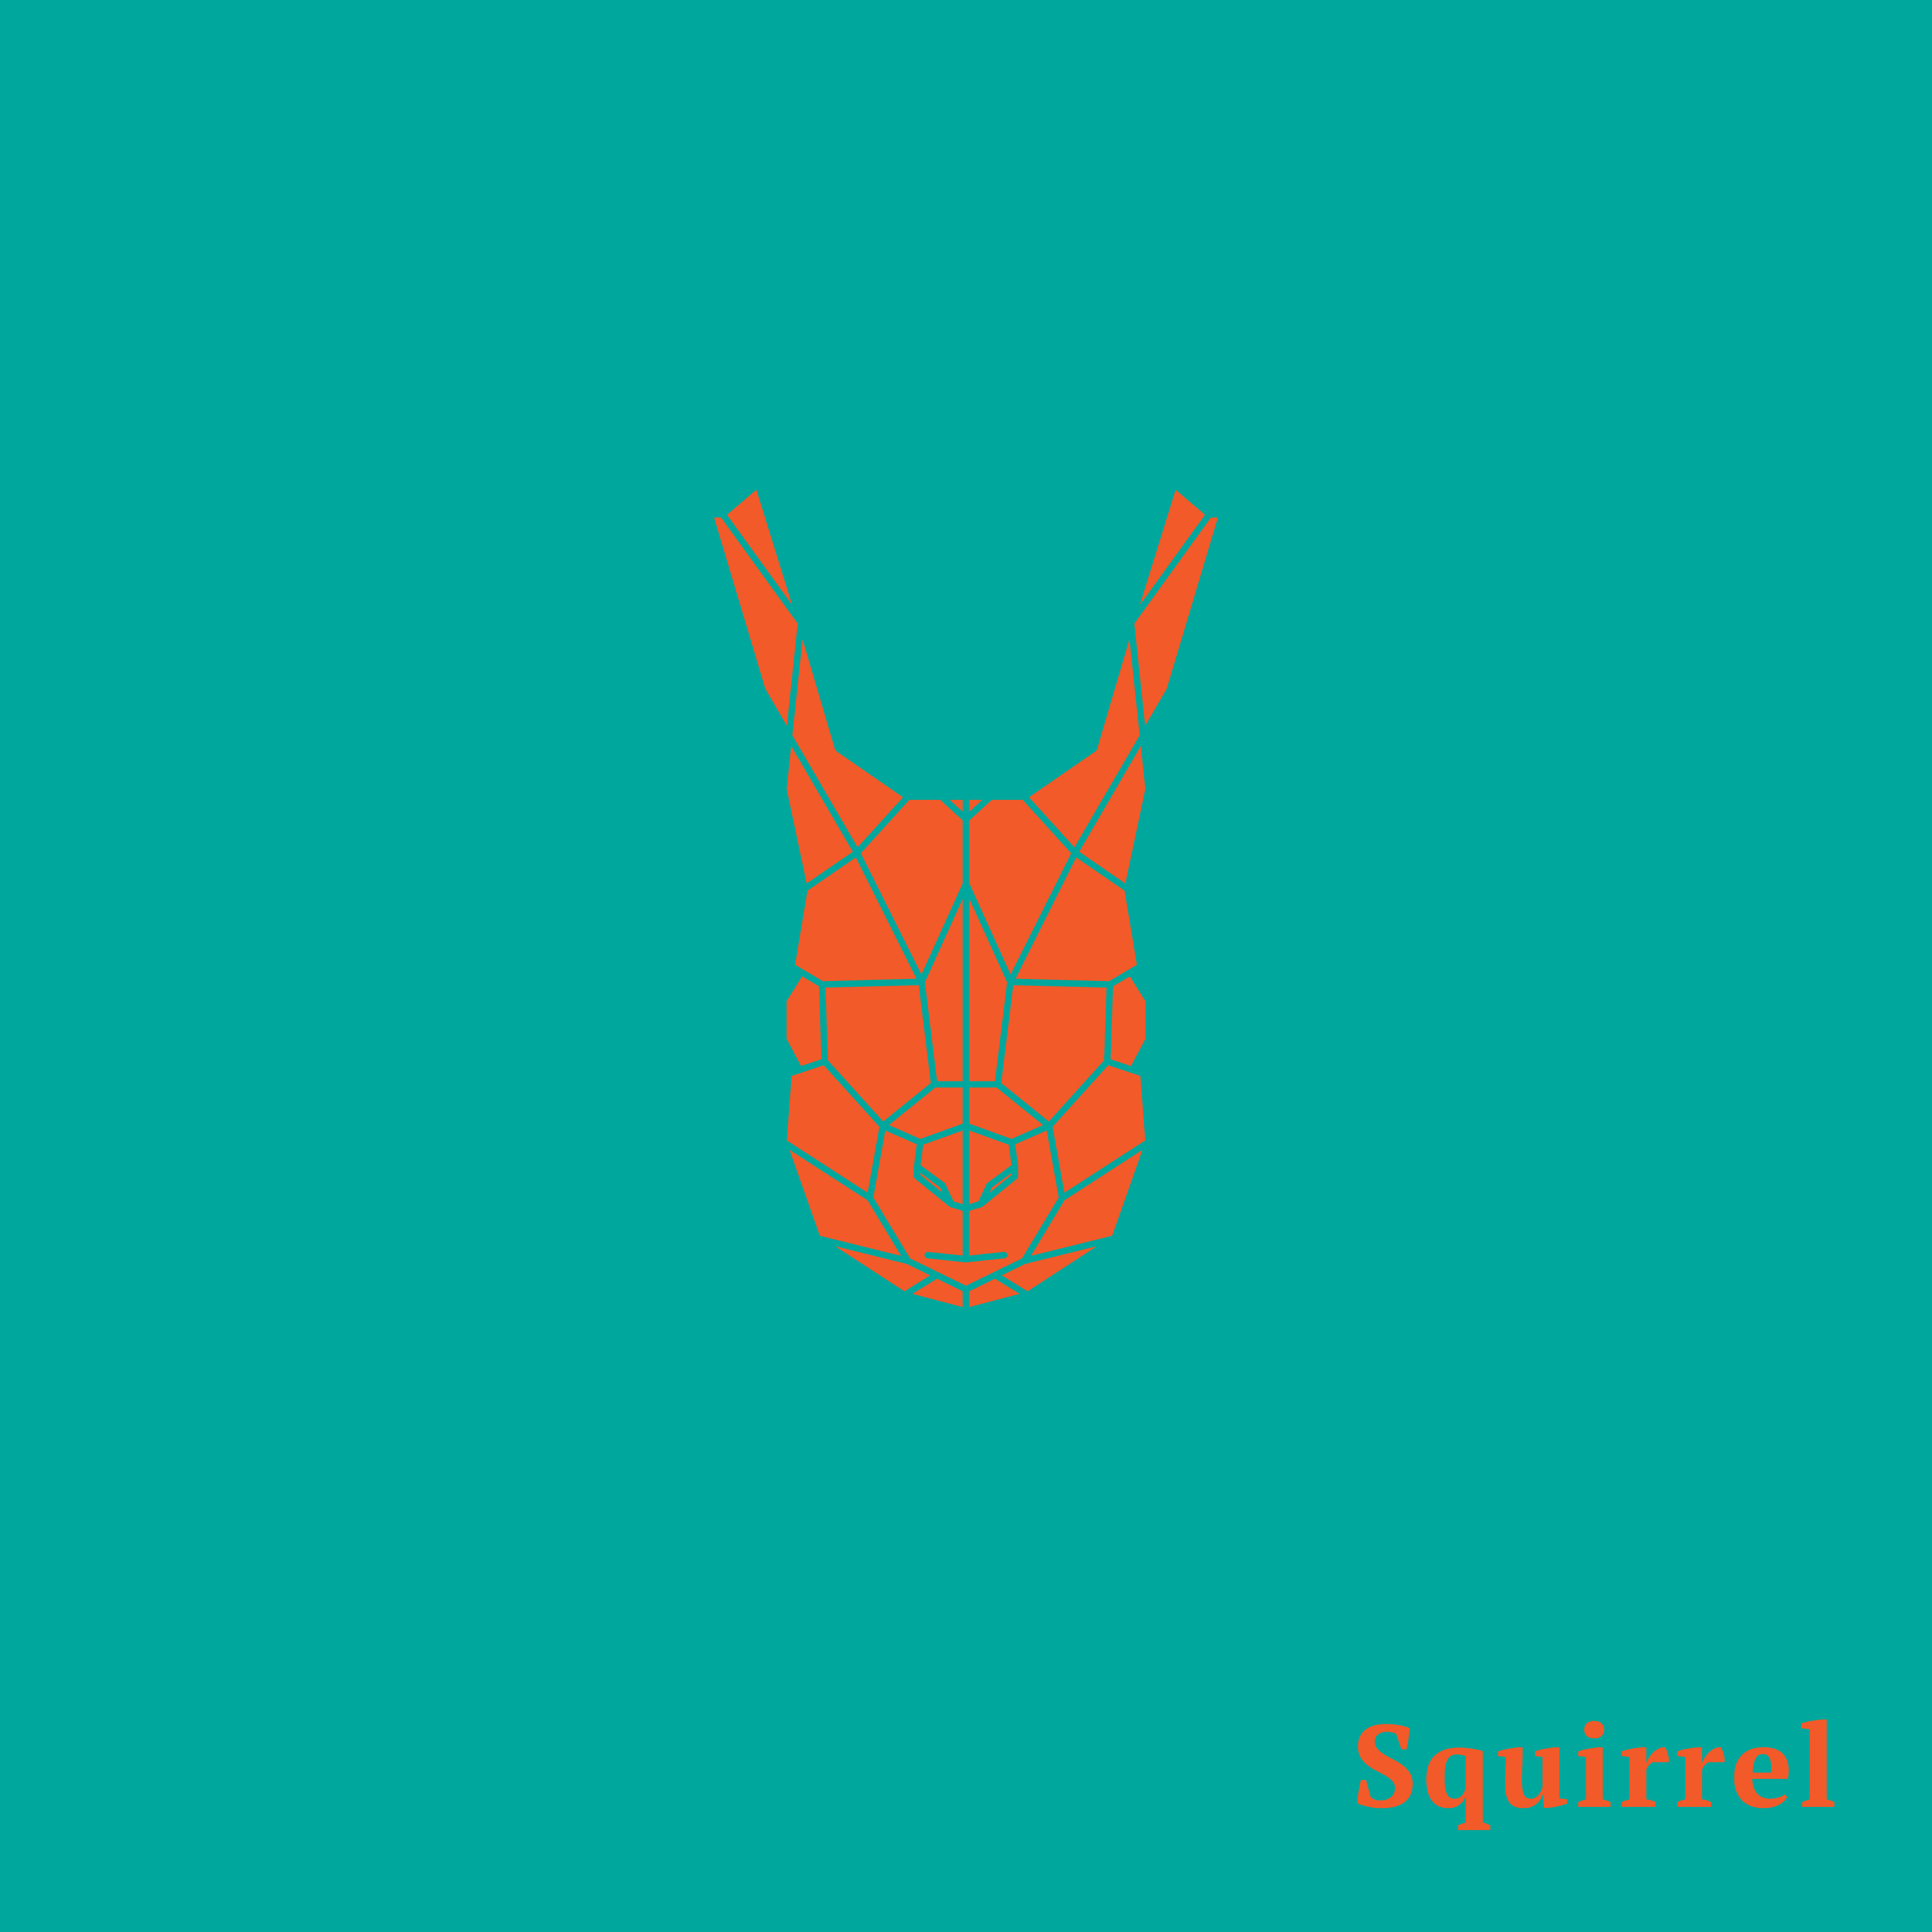 Wild Animal Or Zoo Animal Group With Nature Elements On White Background: Geometric Orange Head Squirrel.